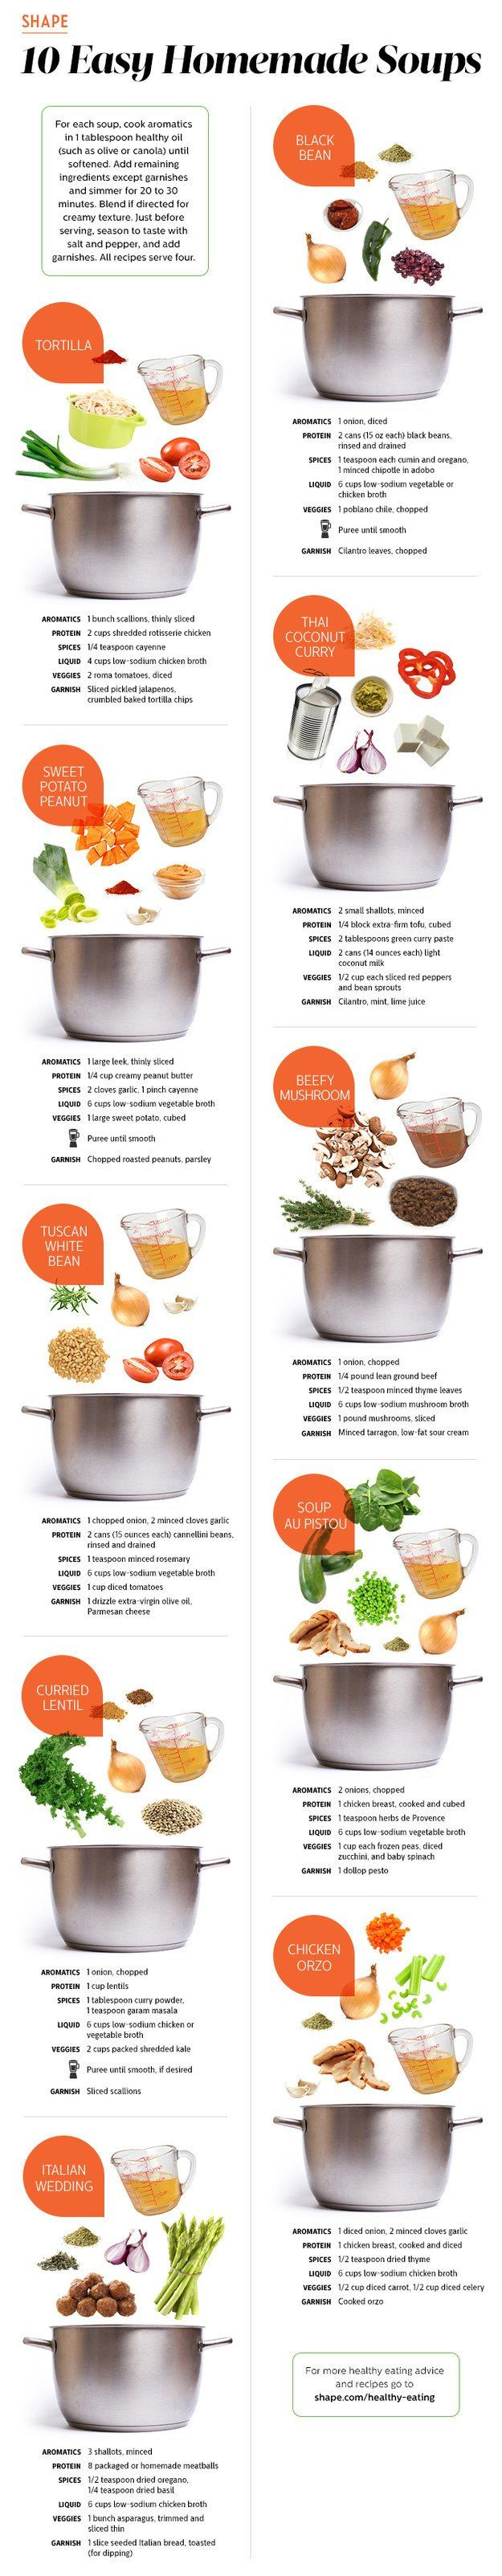 For soup that's healthy and oh so delicious.